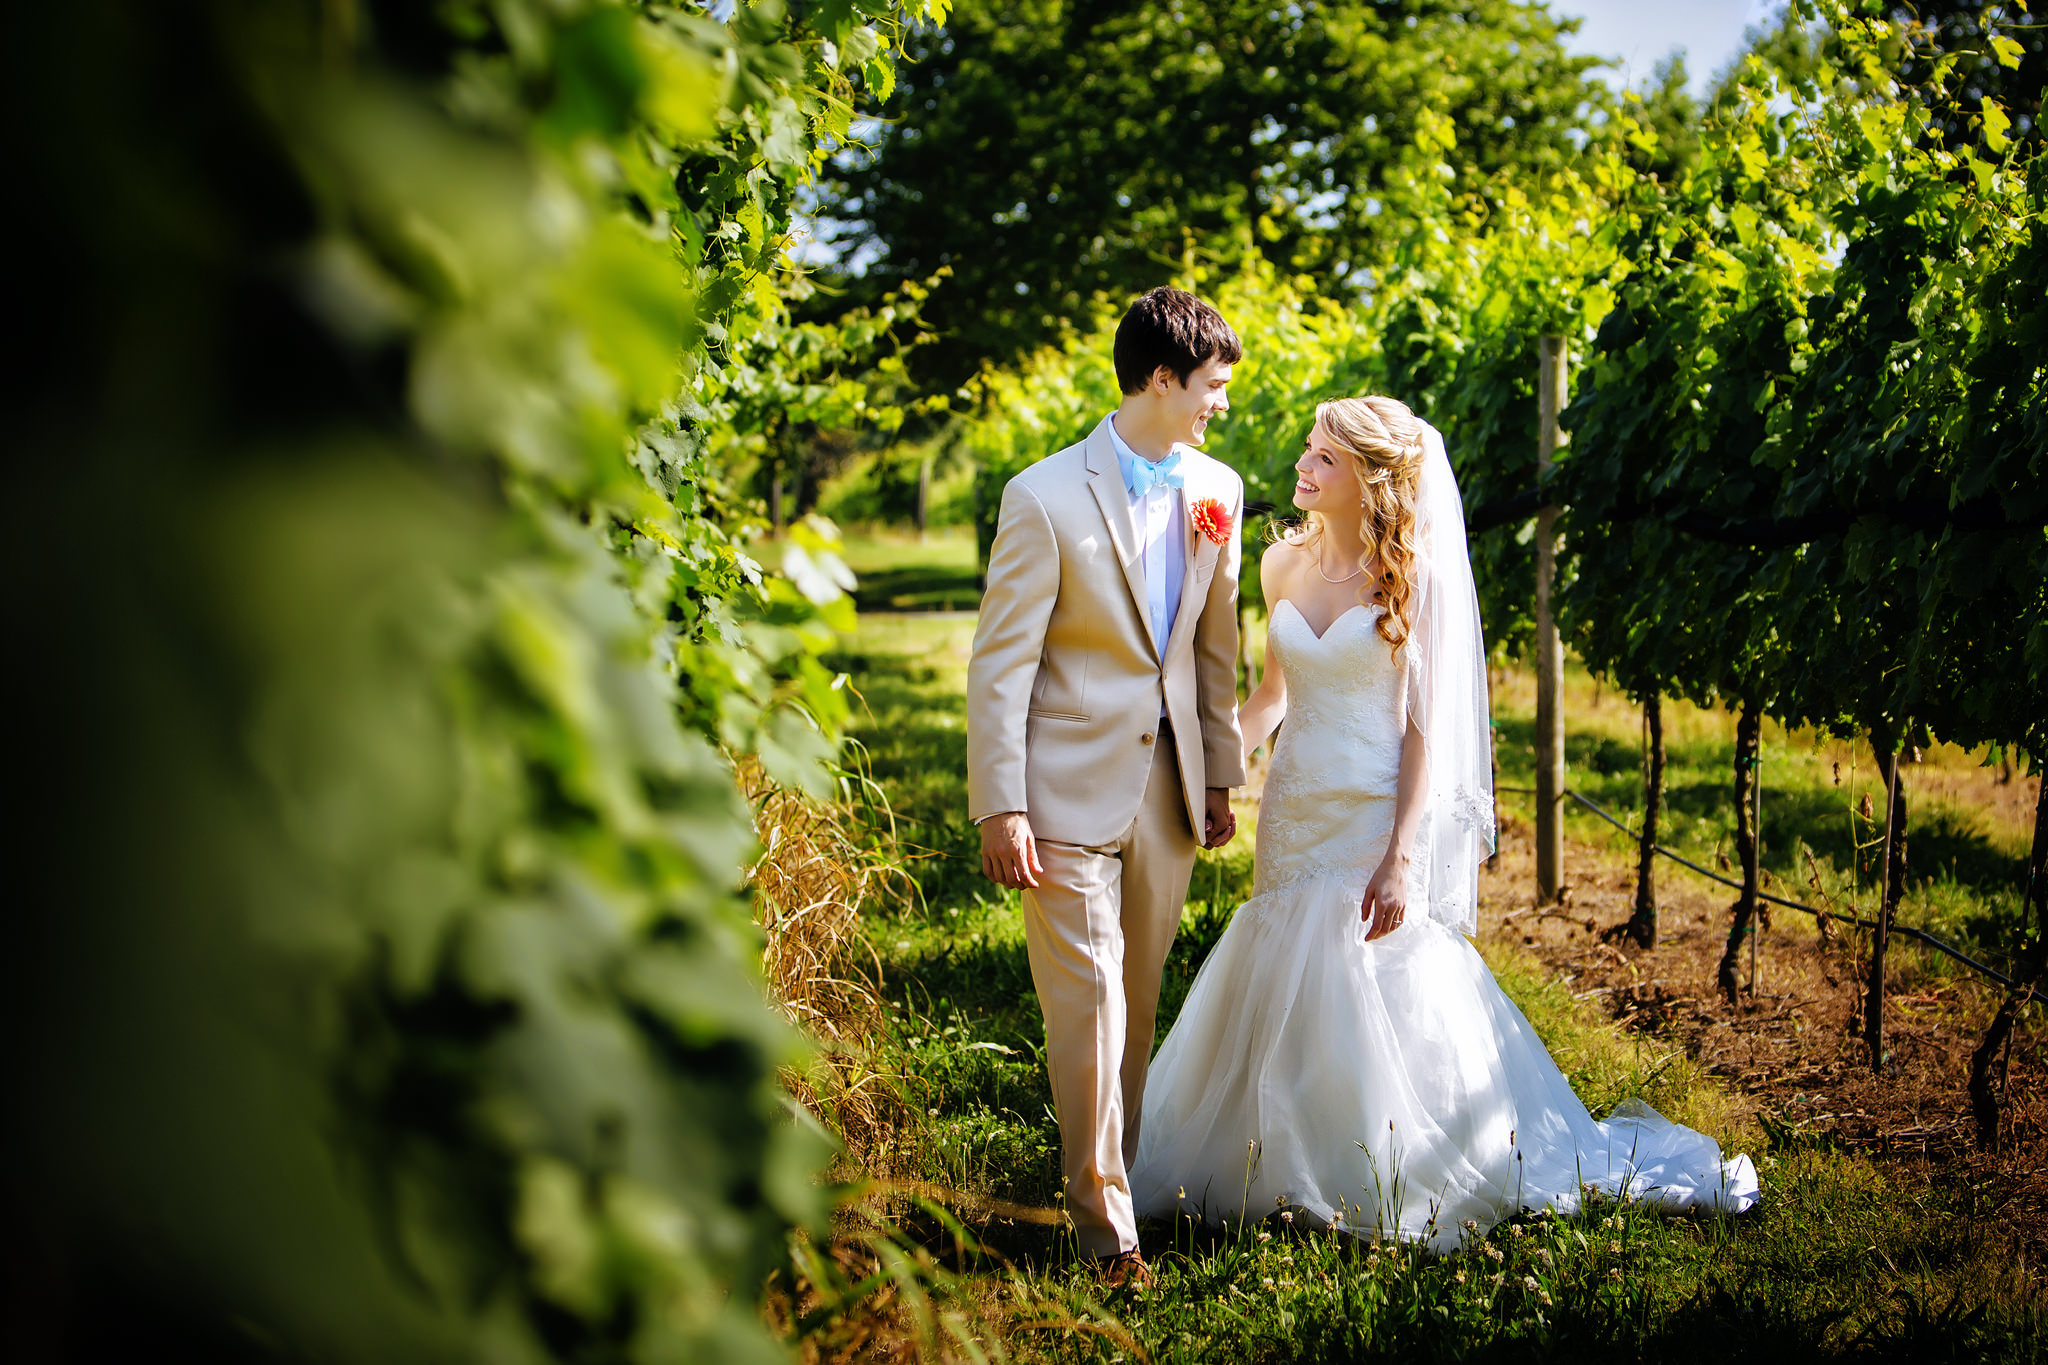 williamsburg winery wedding photographers & charlottesville wedding Photography wedding gallery